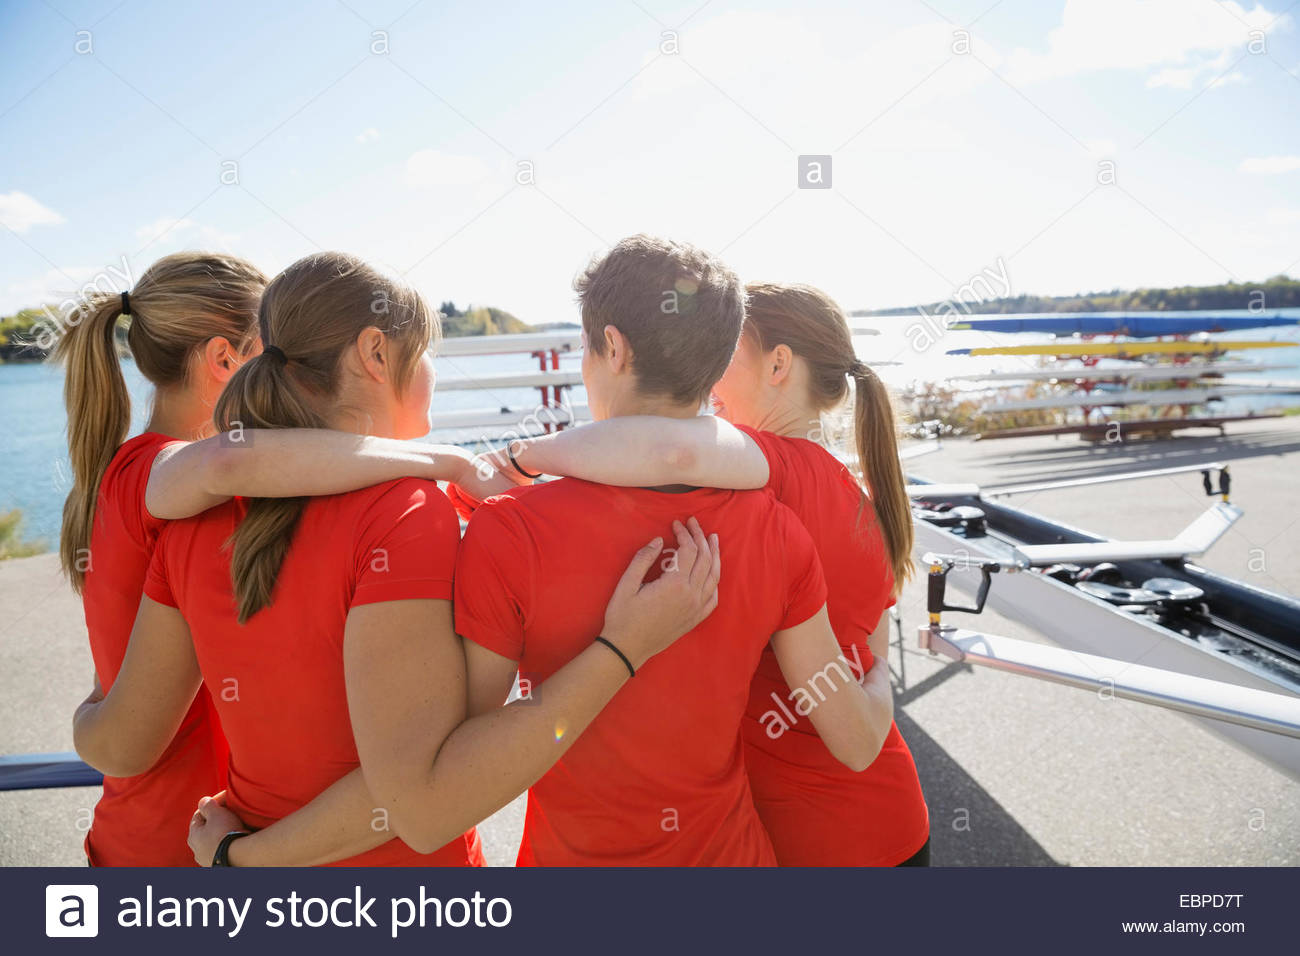 Rowing team hugging at waterfront - Stock Image